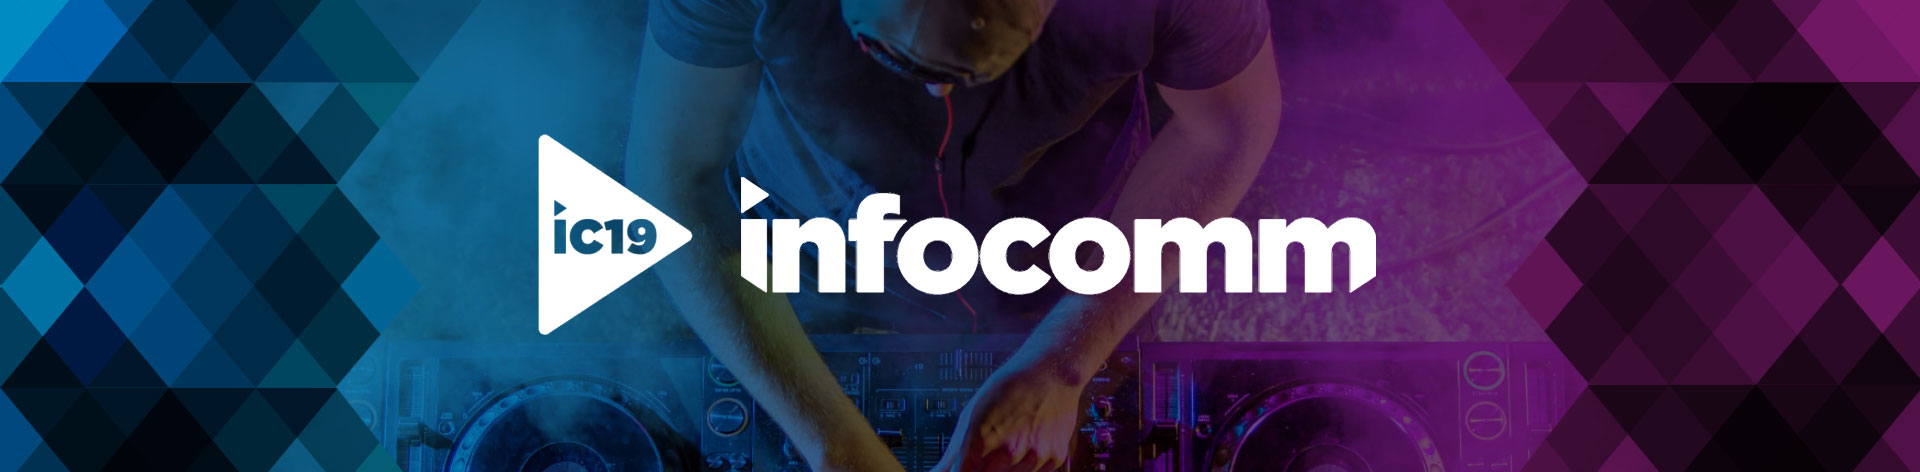 InfoComm 2019 in Orlando, FL June 8 to 14 2019